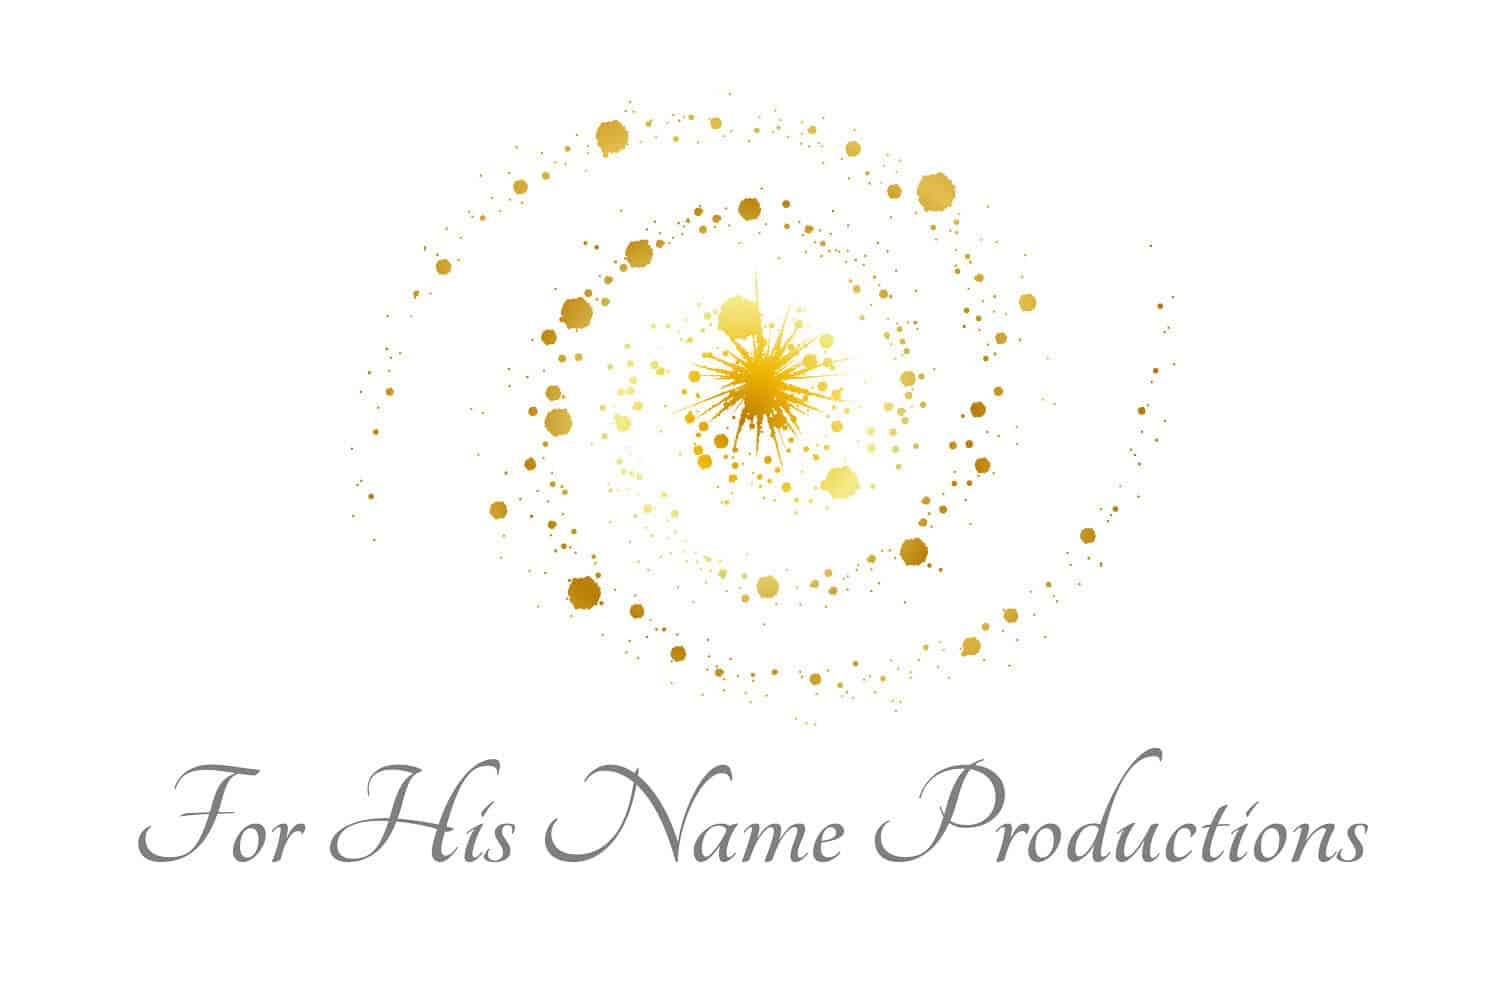 ForHisNameProductions_Logo_Design_By_UziMedia